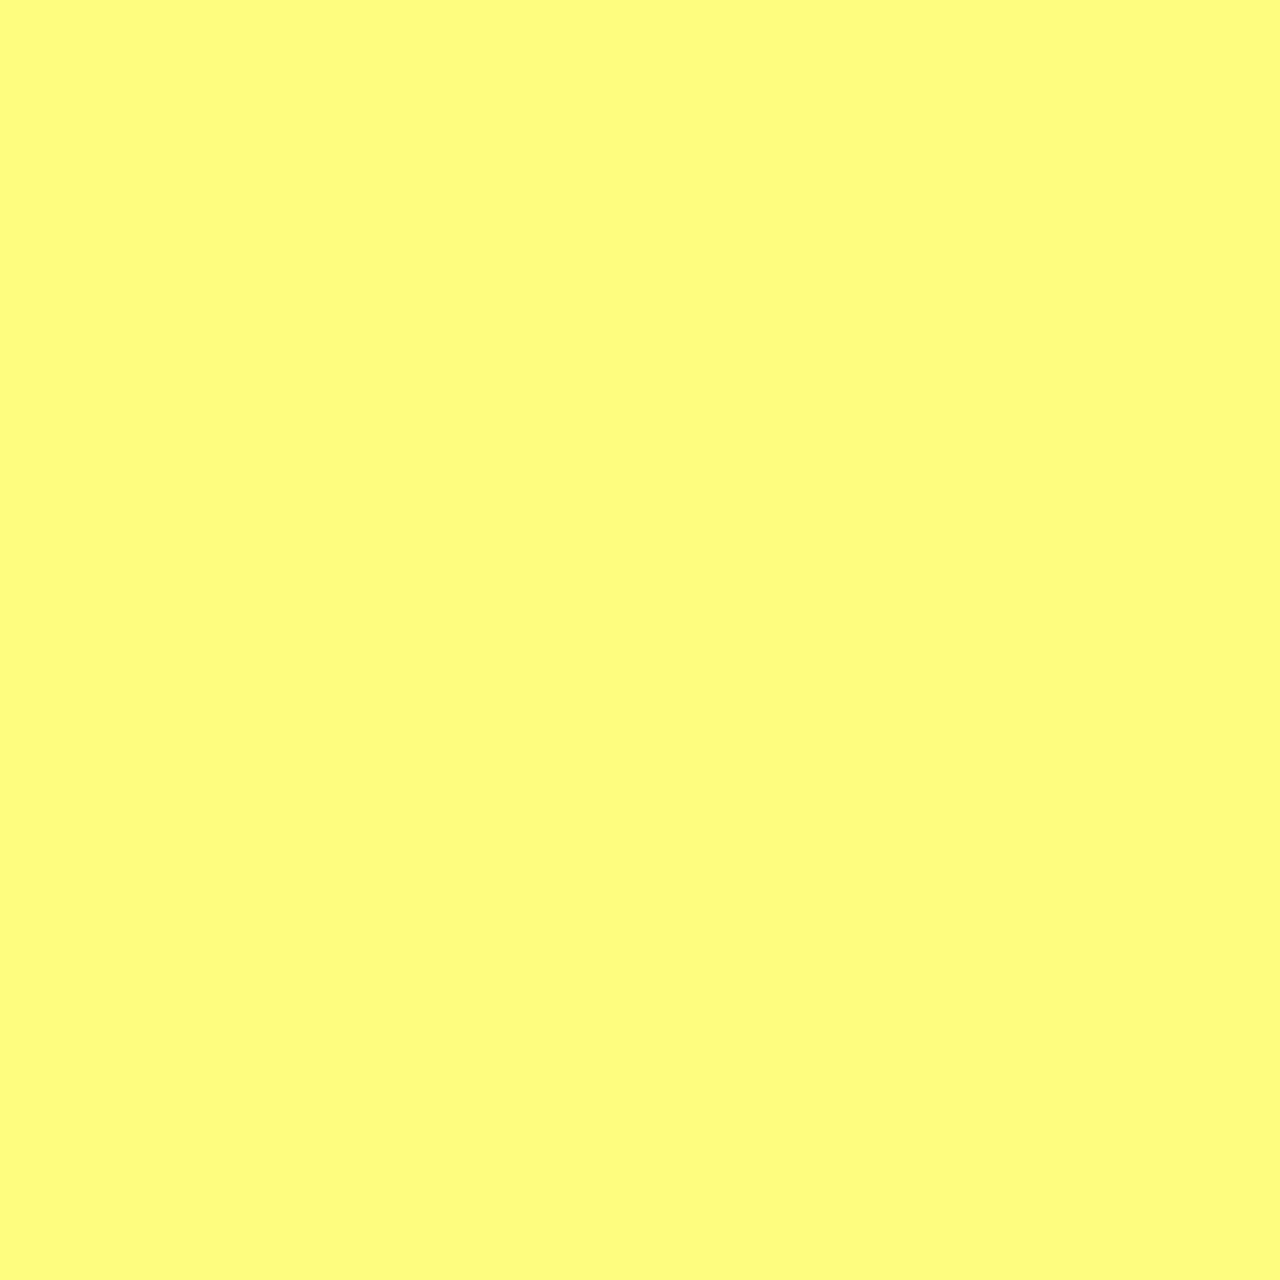 #4560 Rosco Gels Roscolux CalColor 60 Yellow, 20x24""